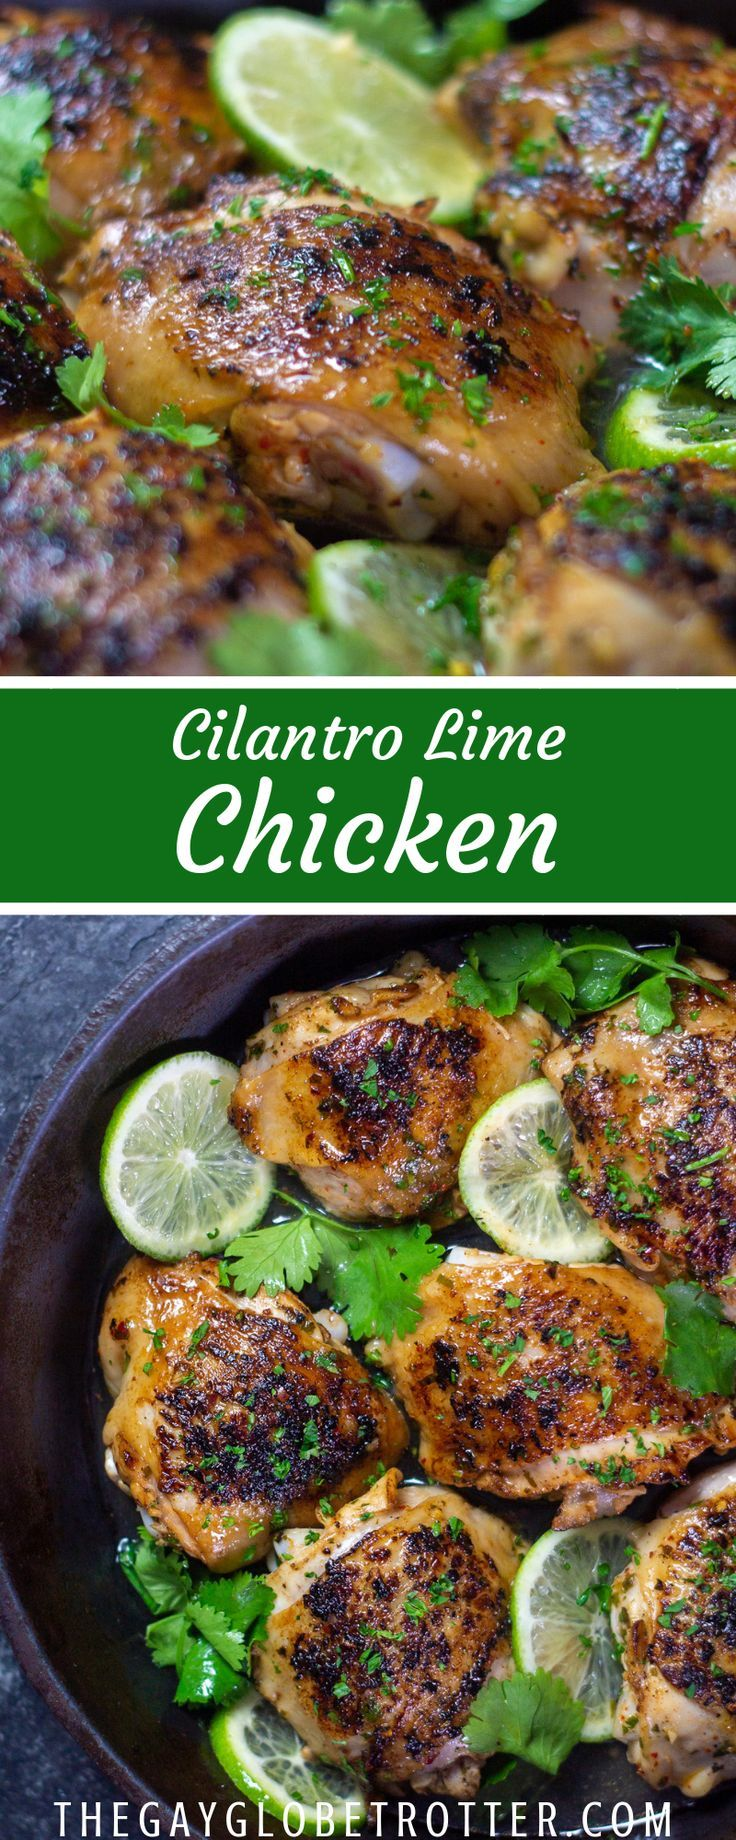 This cilantro lime chicken thigh recipe features chicken thighs or breasts in a cilantro lime marin